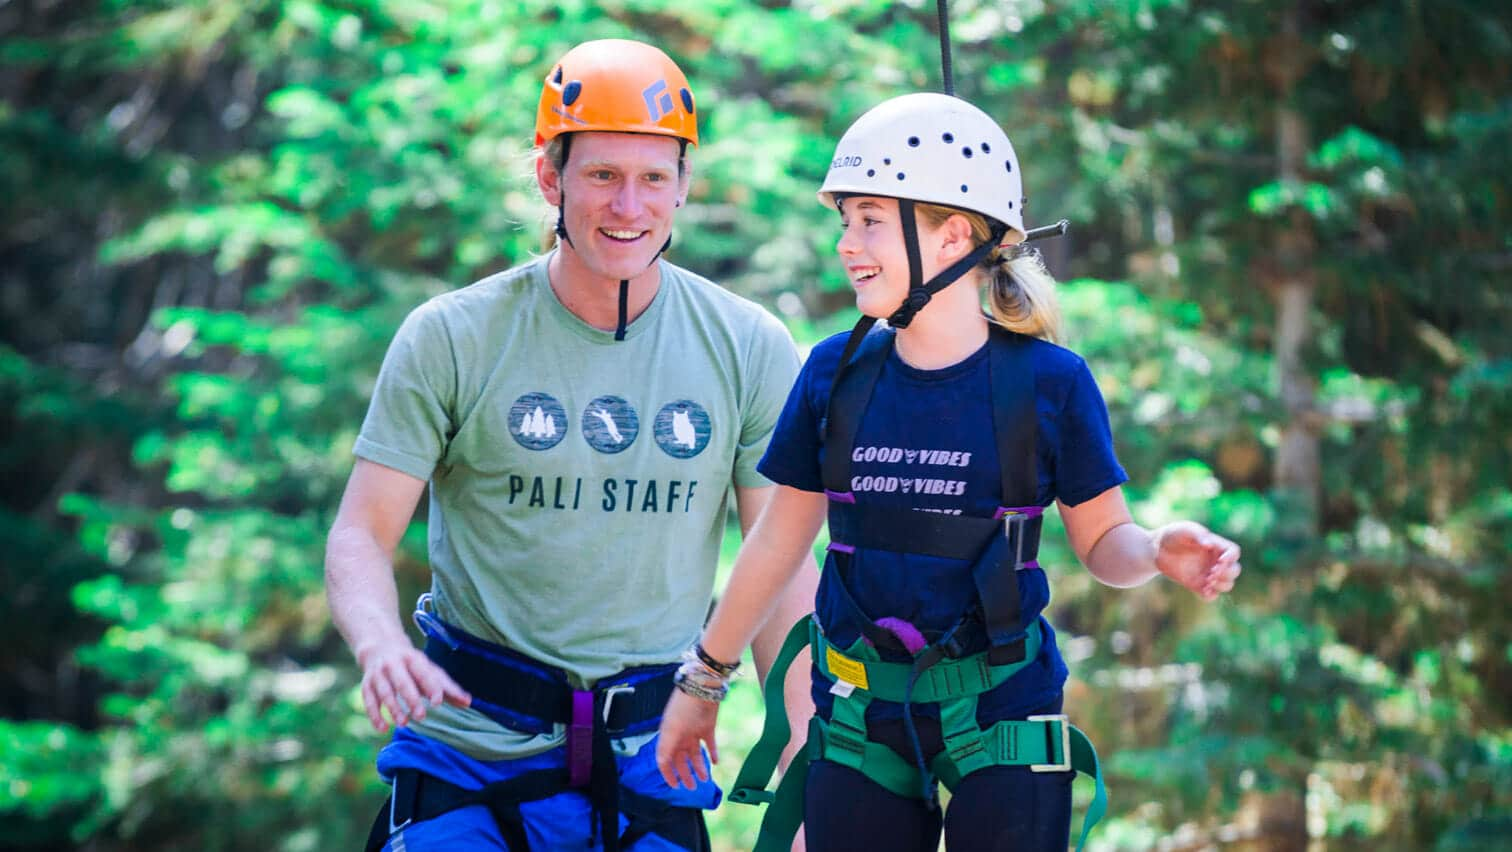 Pali instructor helps student across low ropes course